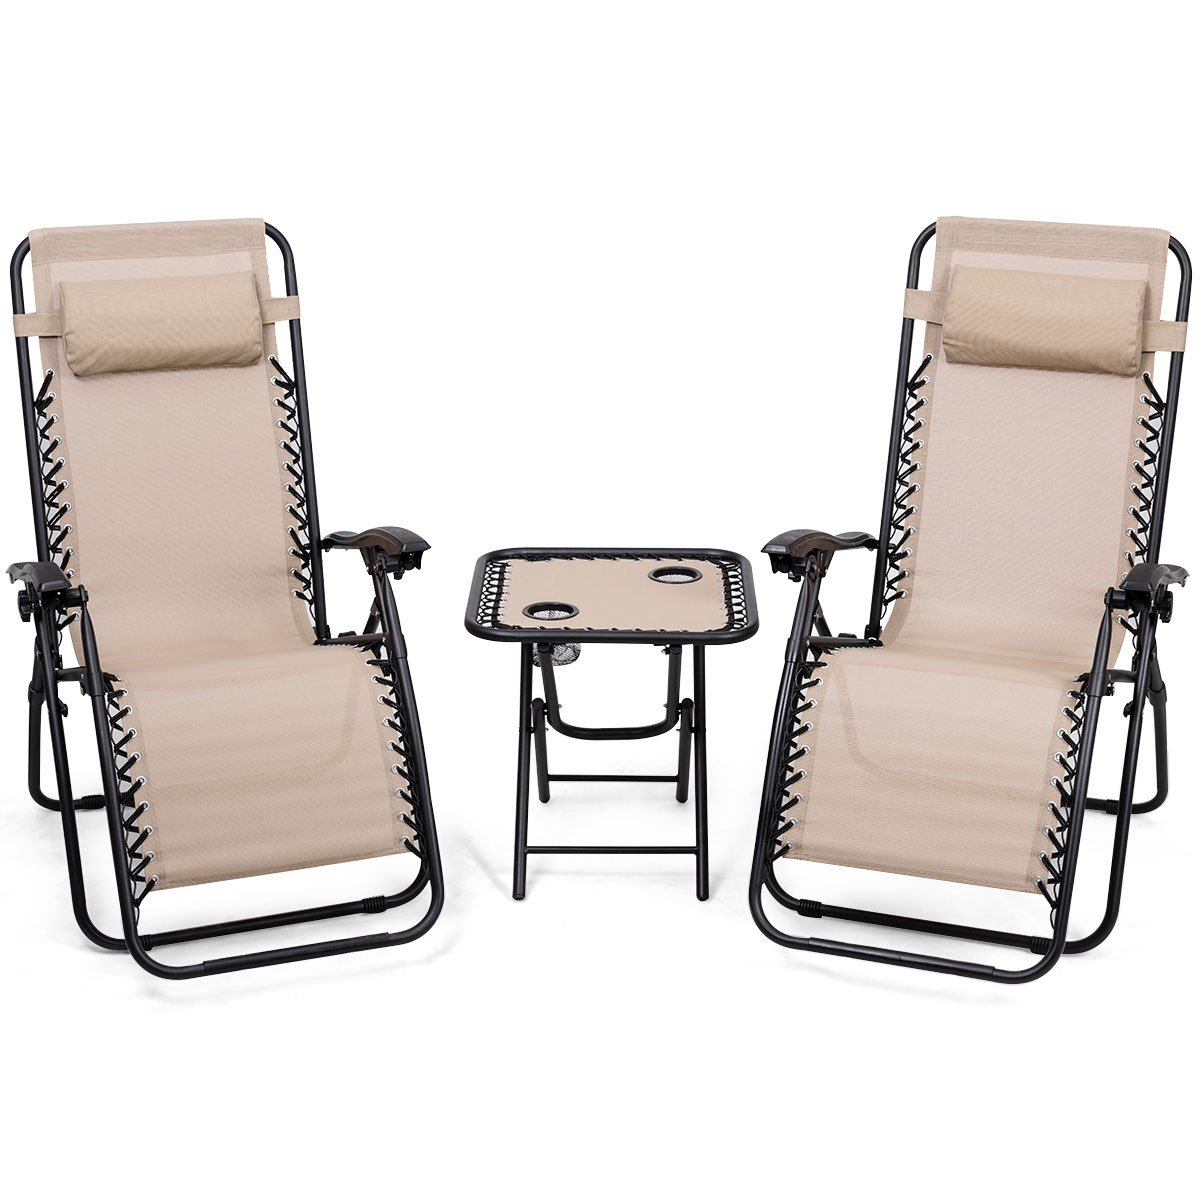 Giantex 3 PCS Zero Gravity Chair Patio Chaise Lounge Chairs Outdoor Yard Pool Recliner Folding Lounge Table Chair Set Backyard Lounge Chairs Beige